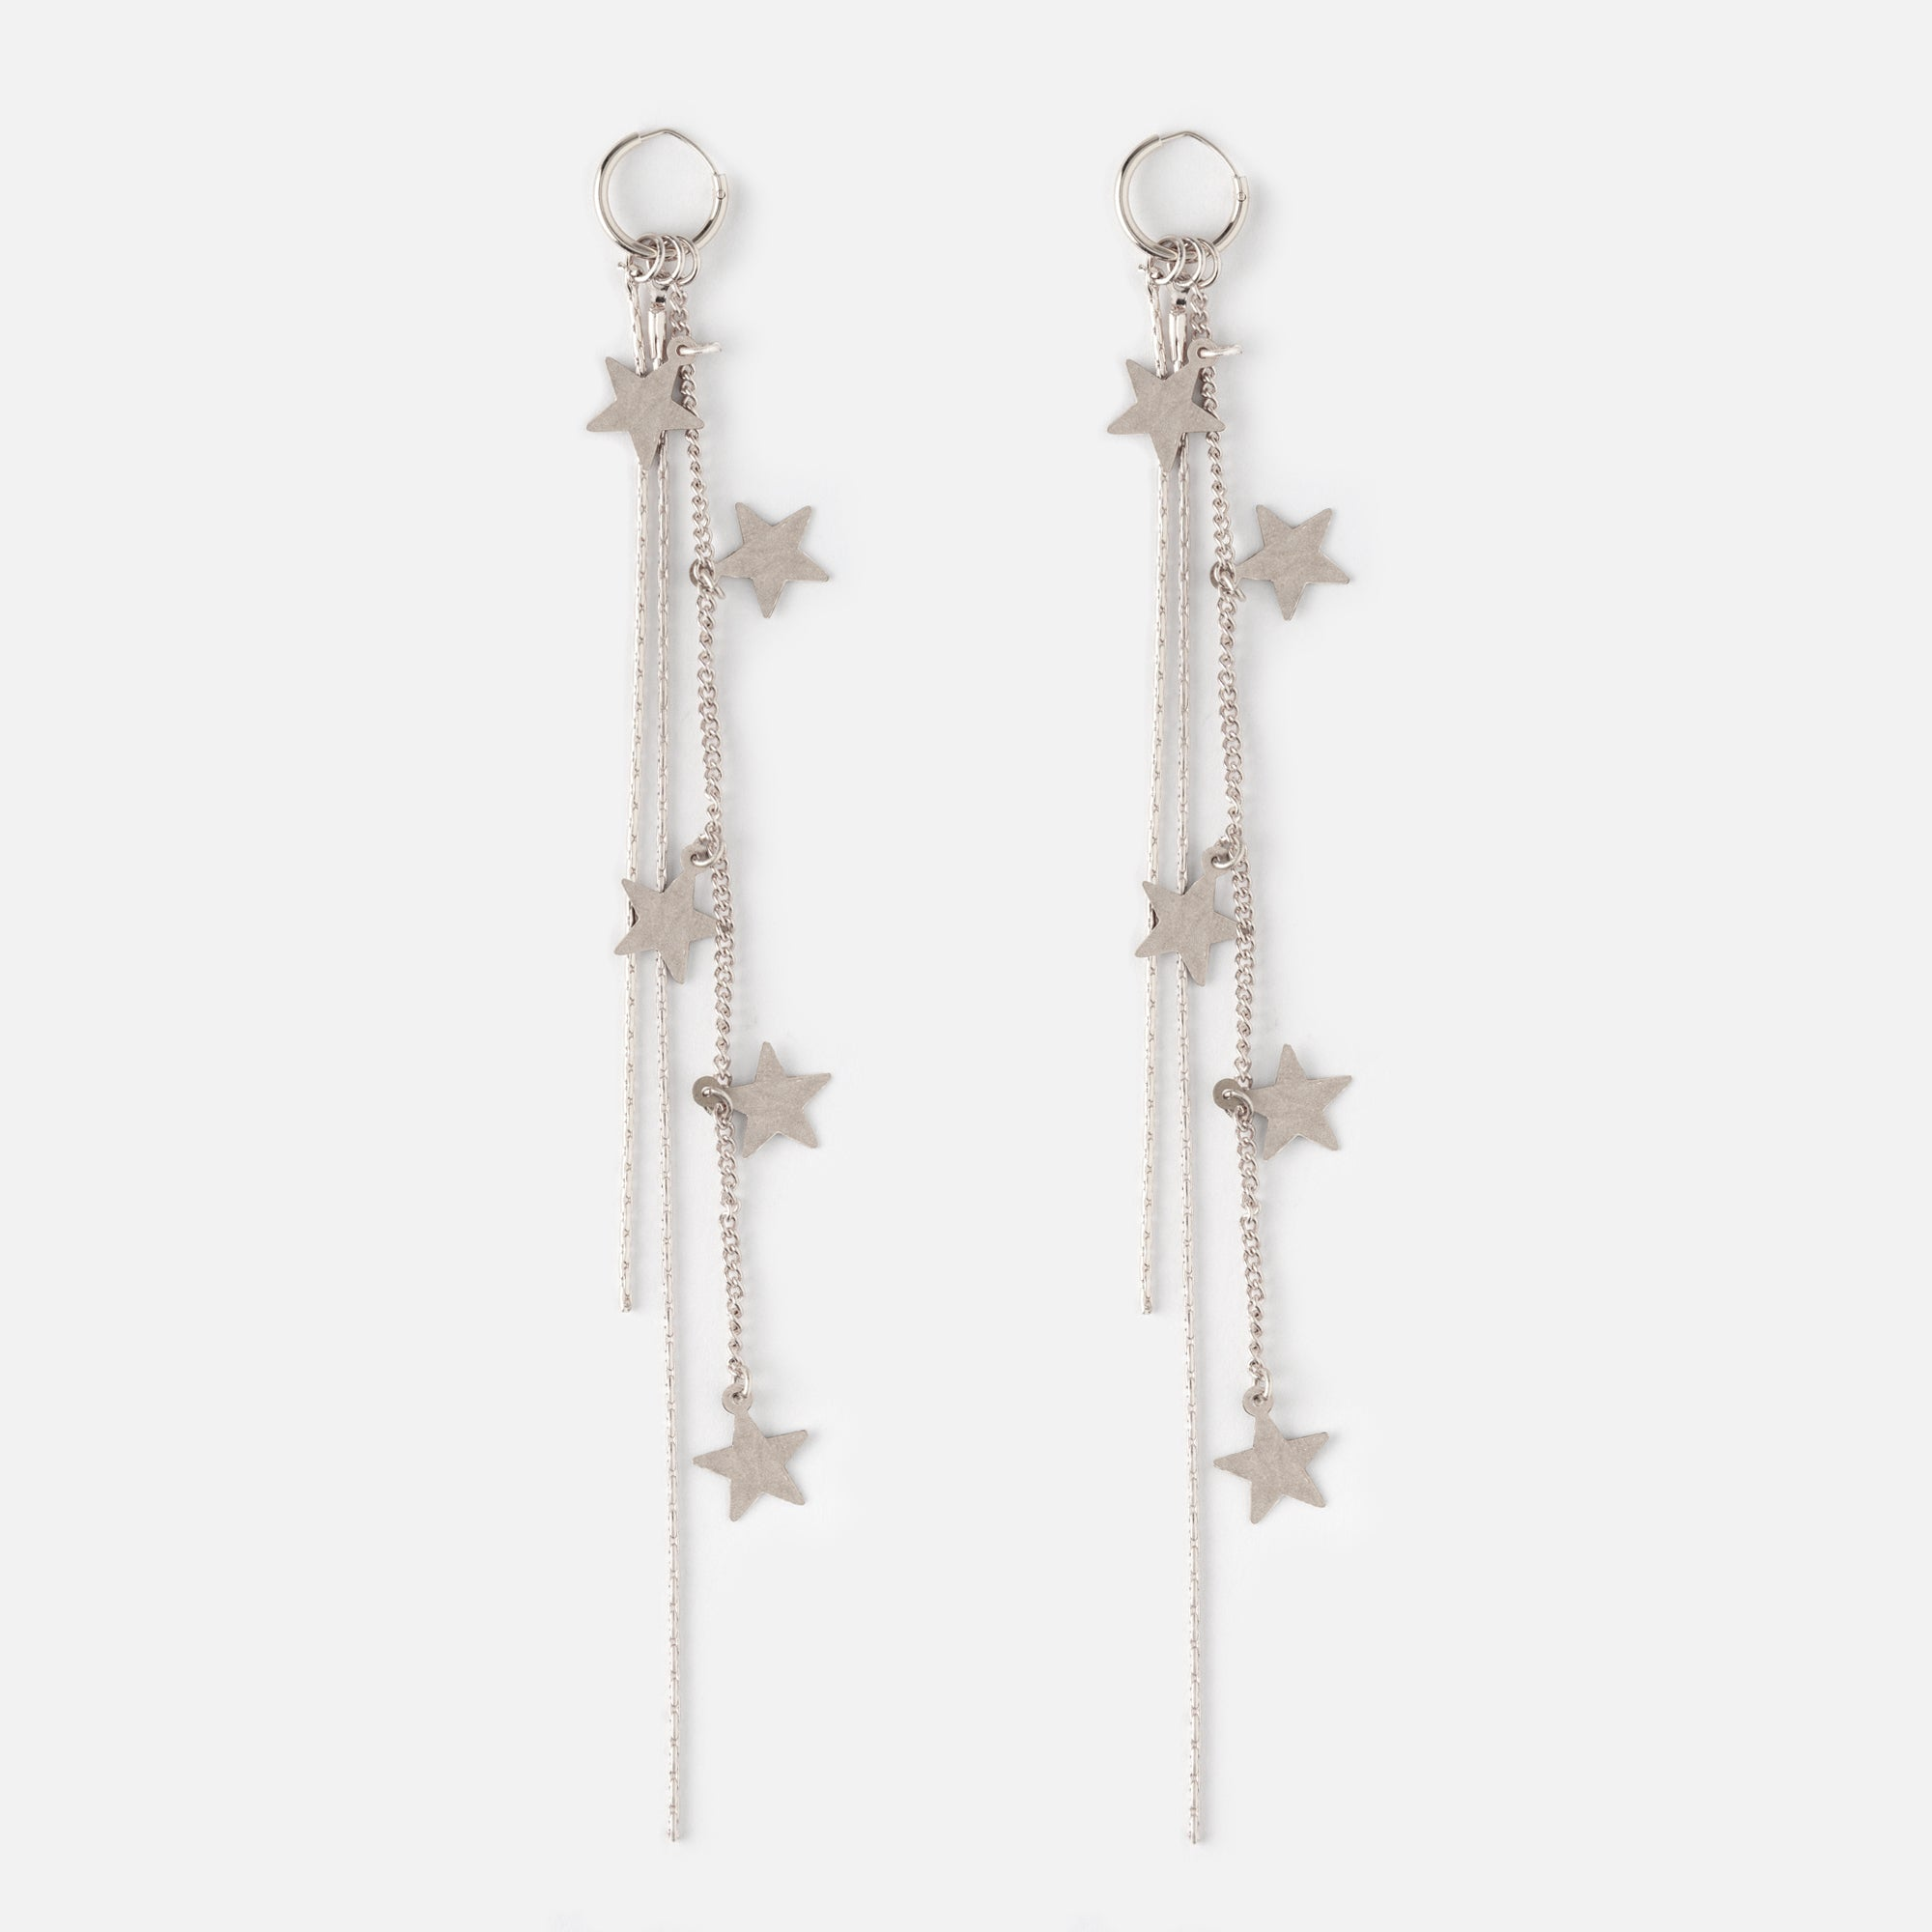 Cascading Star Long Drop Hoop Earrings - Silver